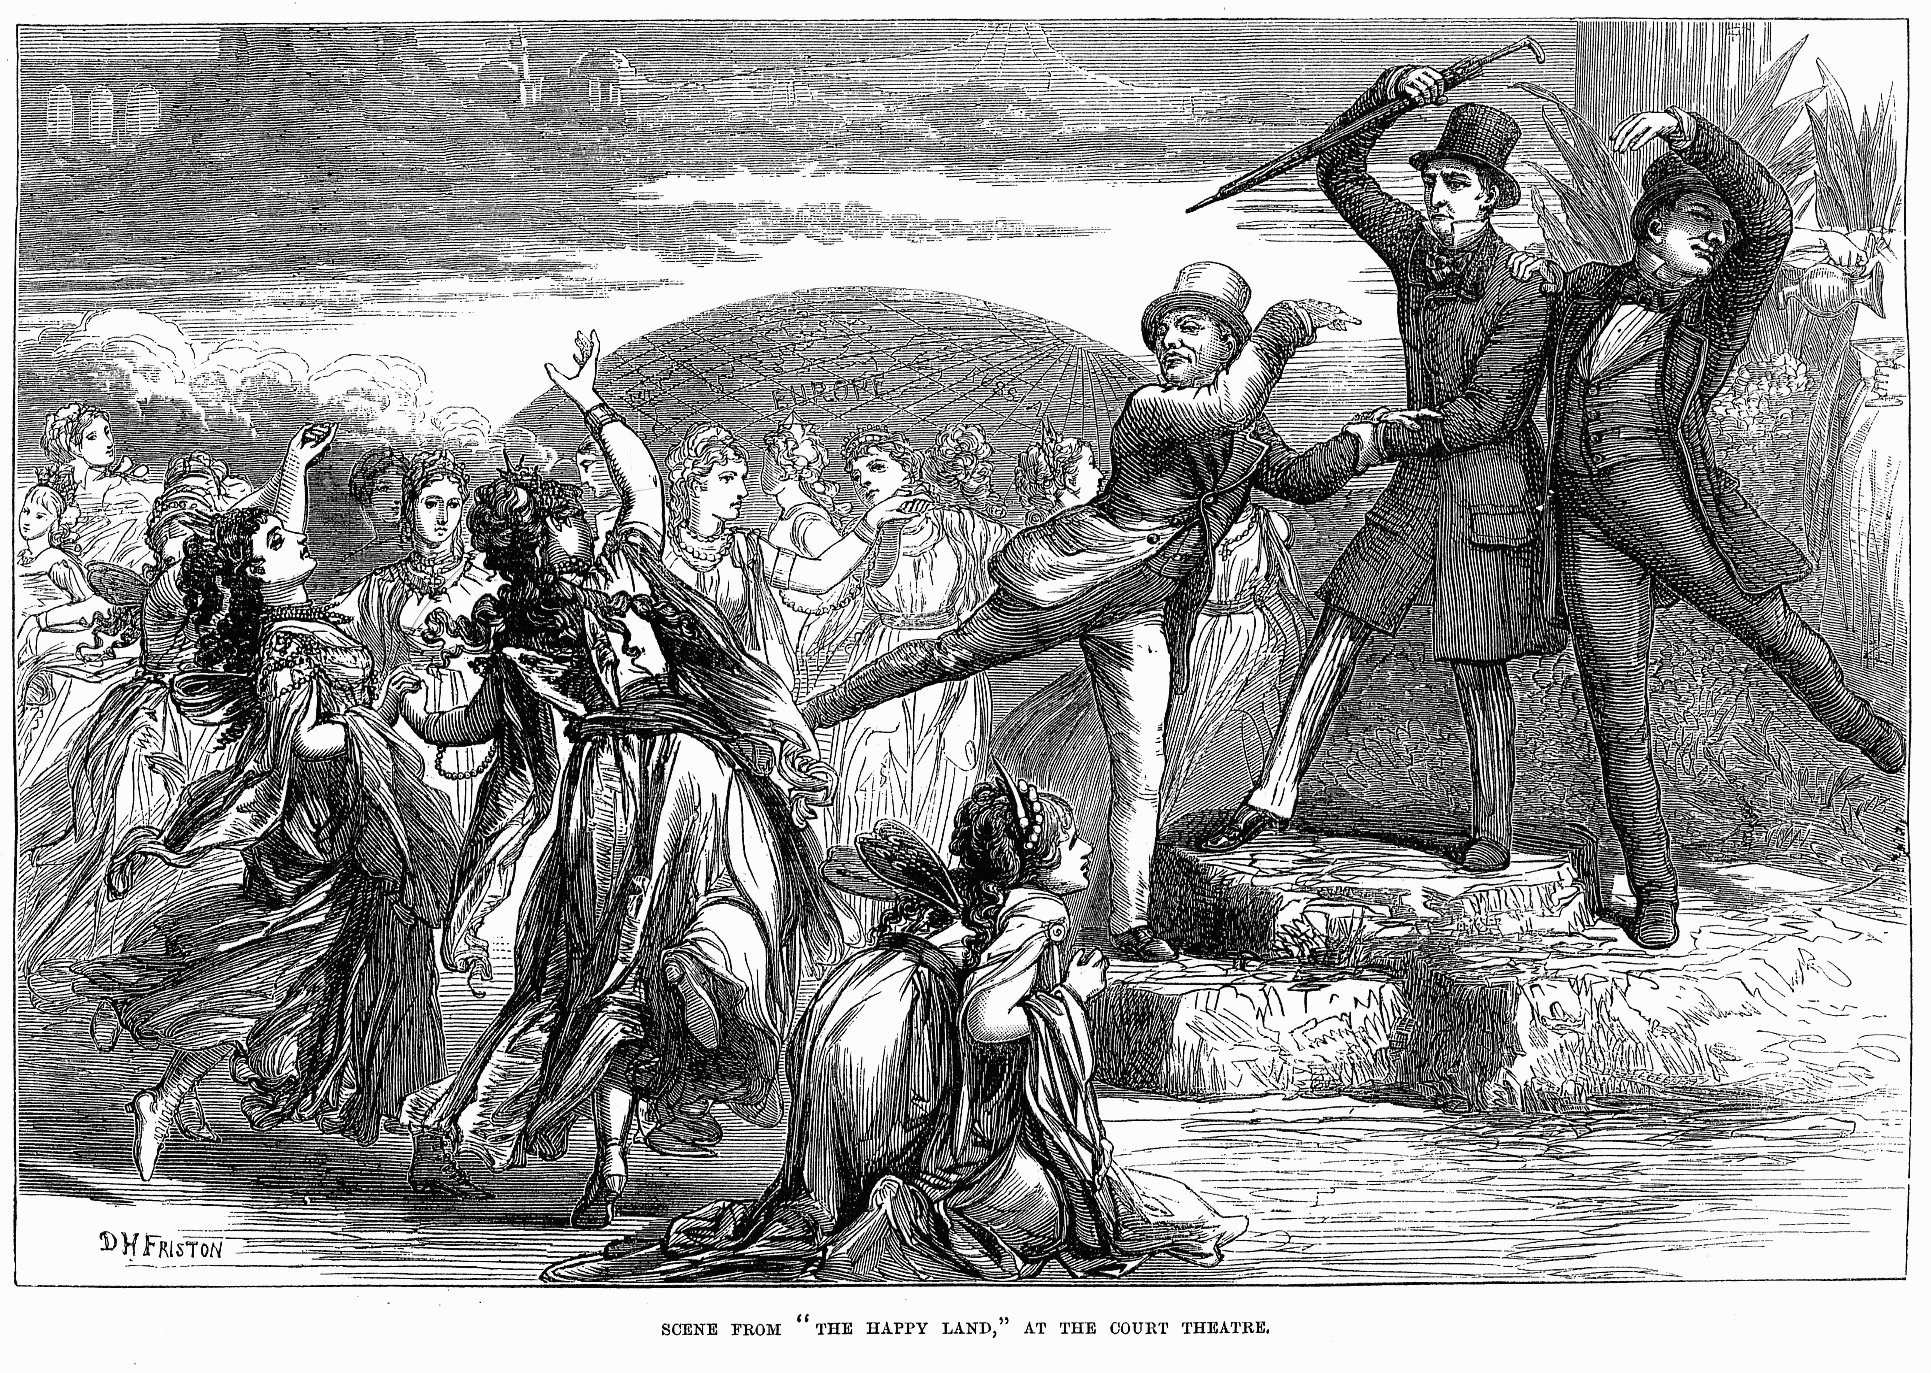 File:The Happy Land - Illustrated London News, March 22, 1873.PNG